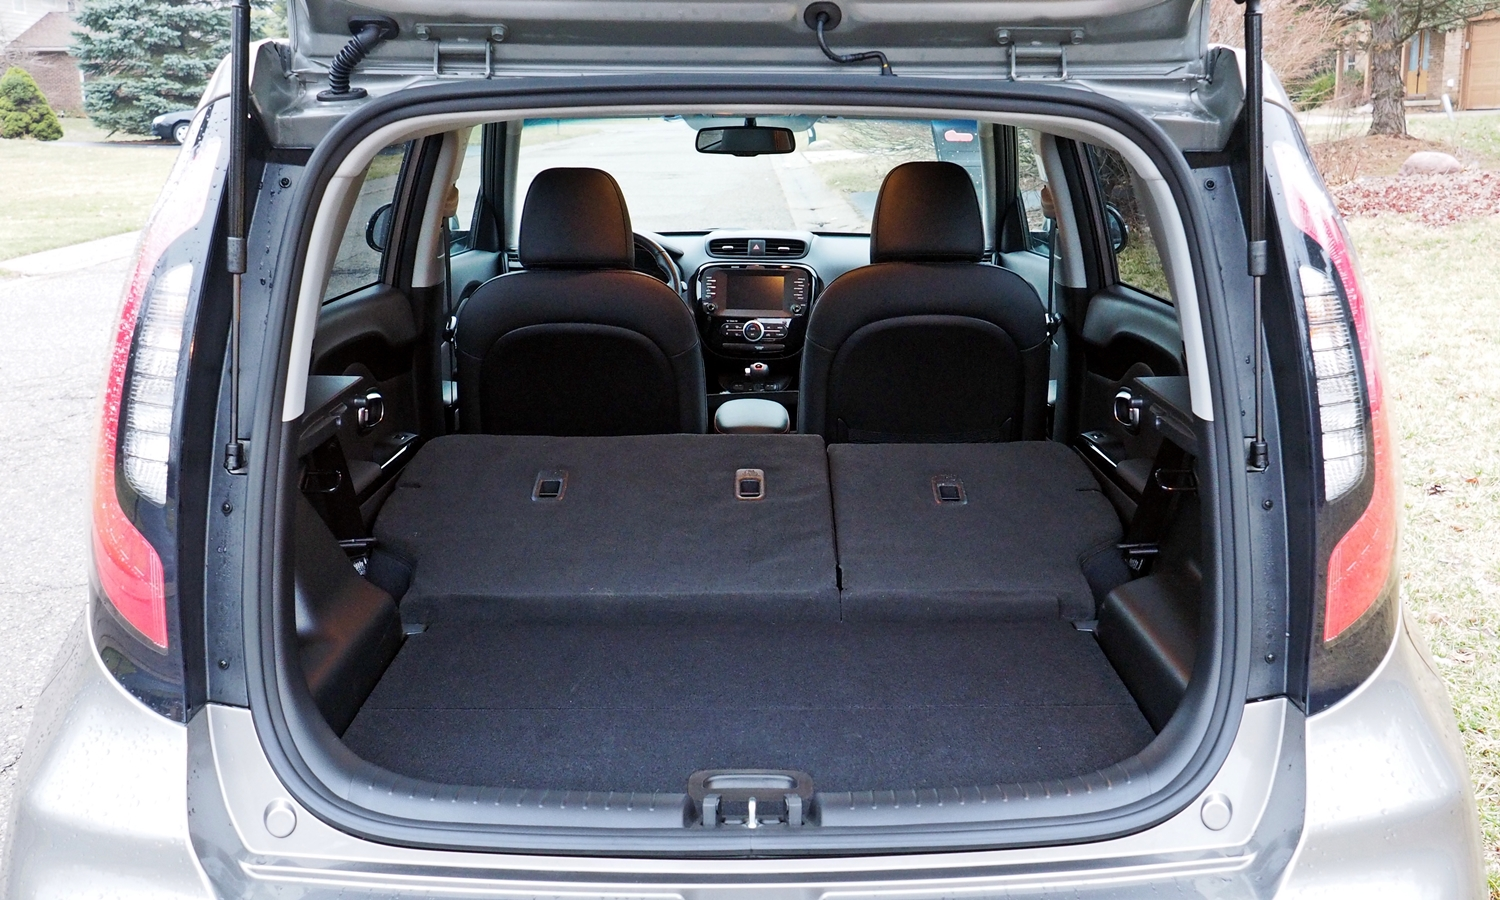 Kia Soul Photos: 2017 Kia Soul ! cargo area seat folded